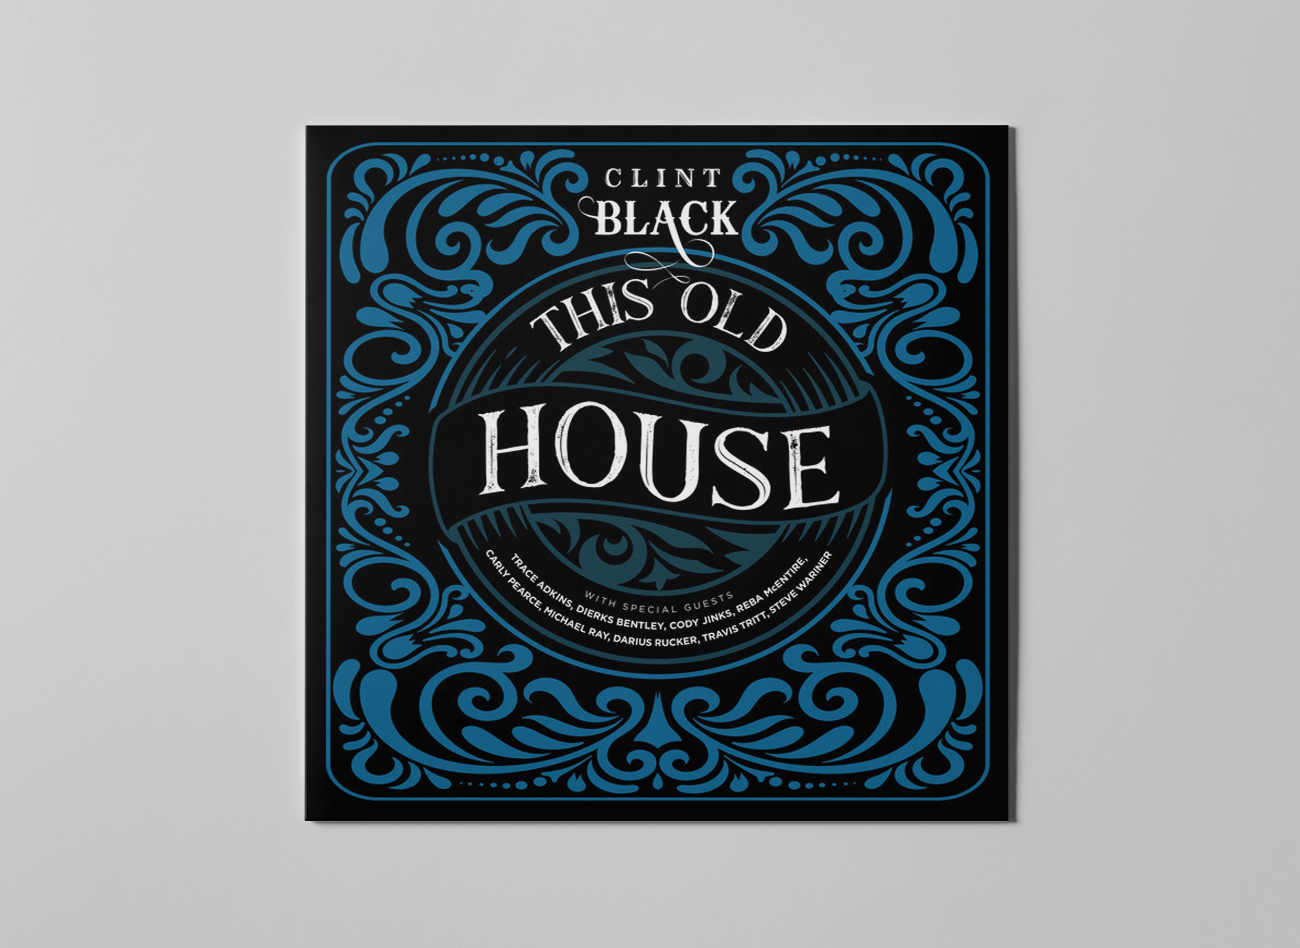 Clint Black This Old House